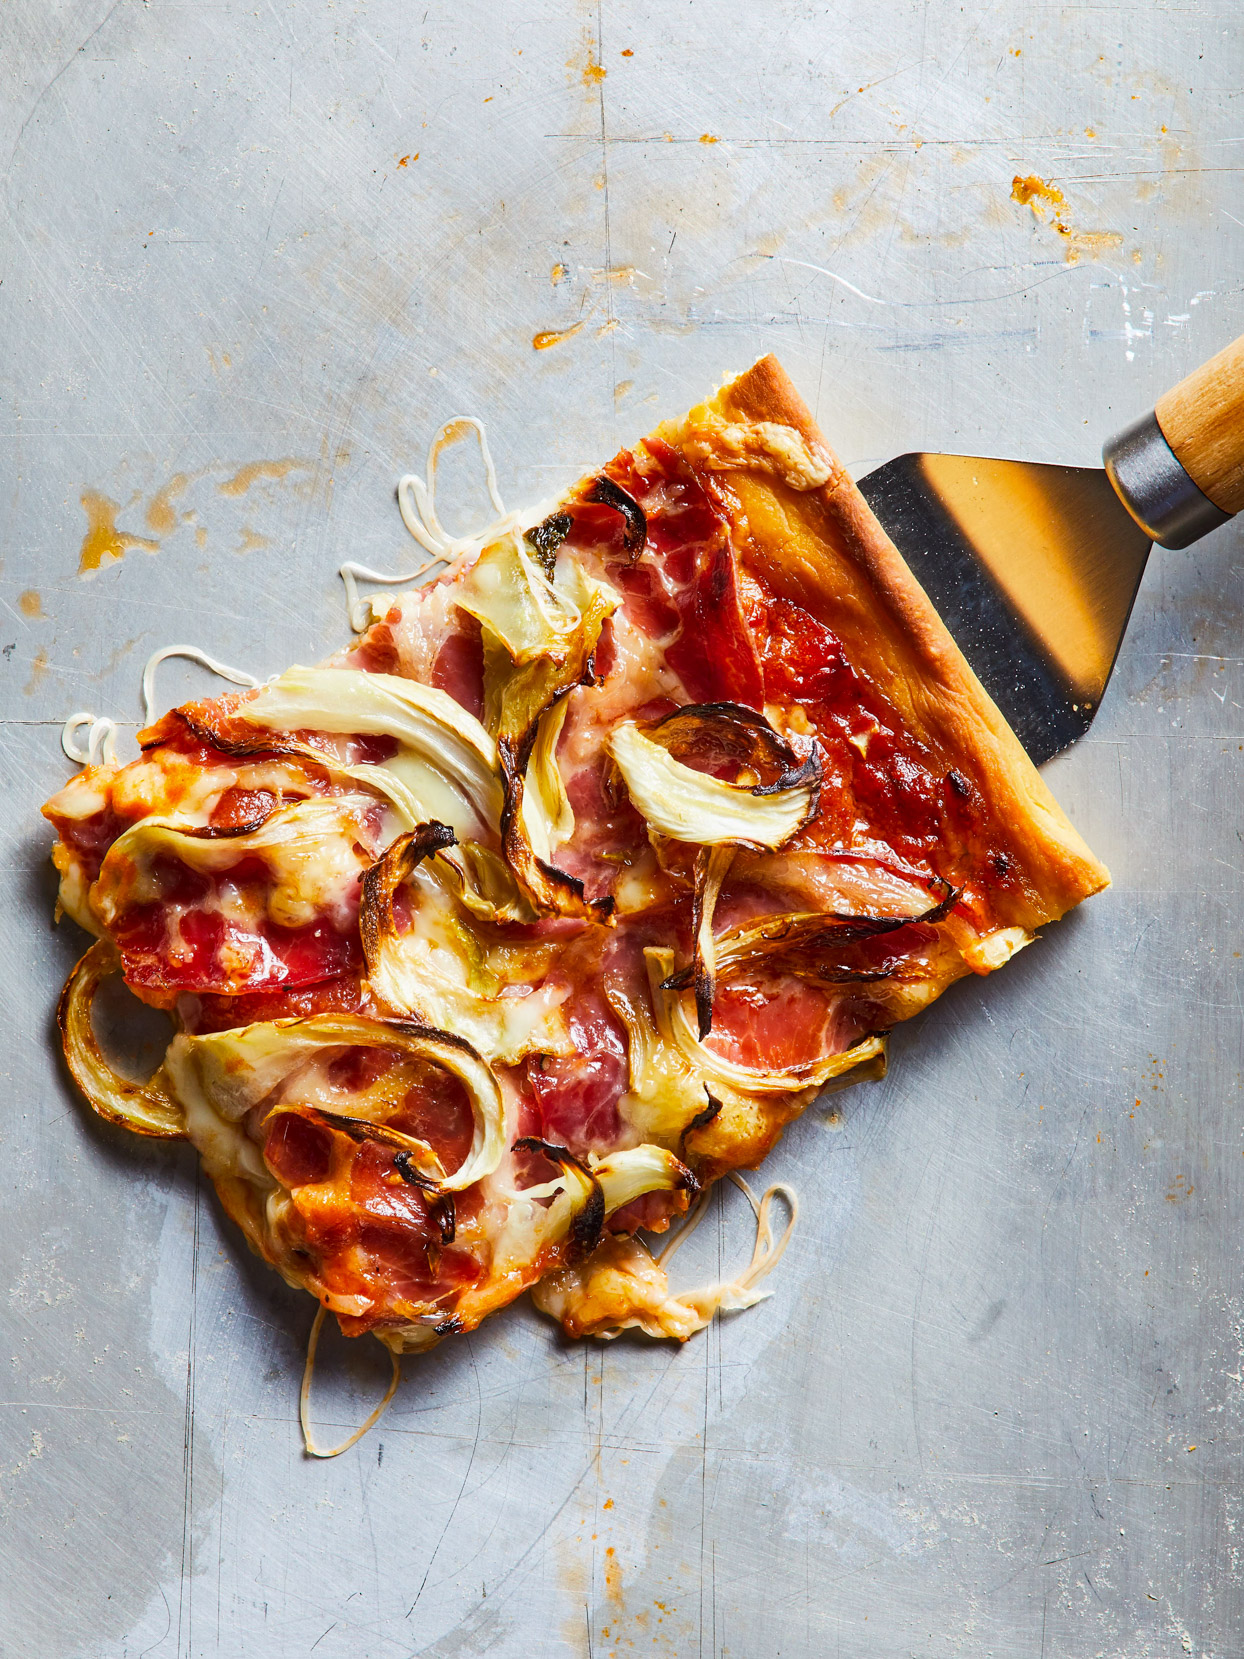 slice of Grandma-Style Pizza with Capicola and Fennel on spatula